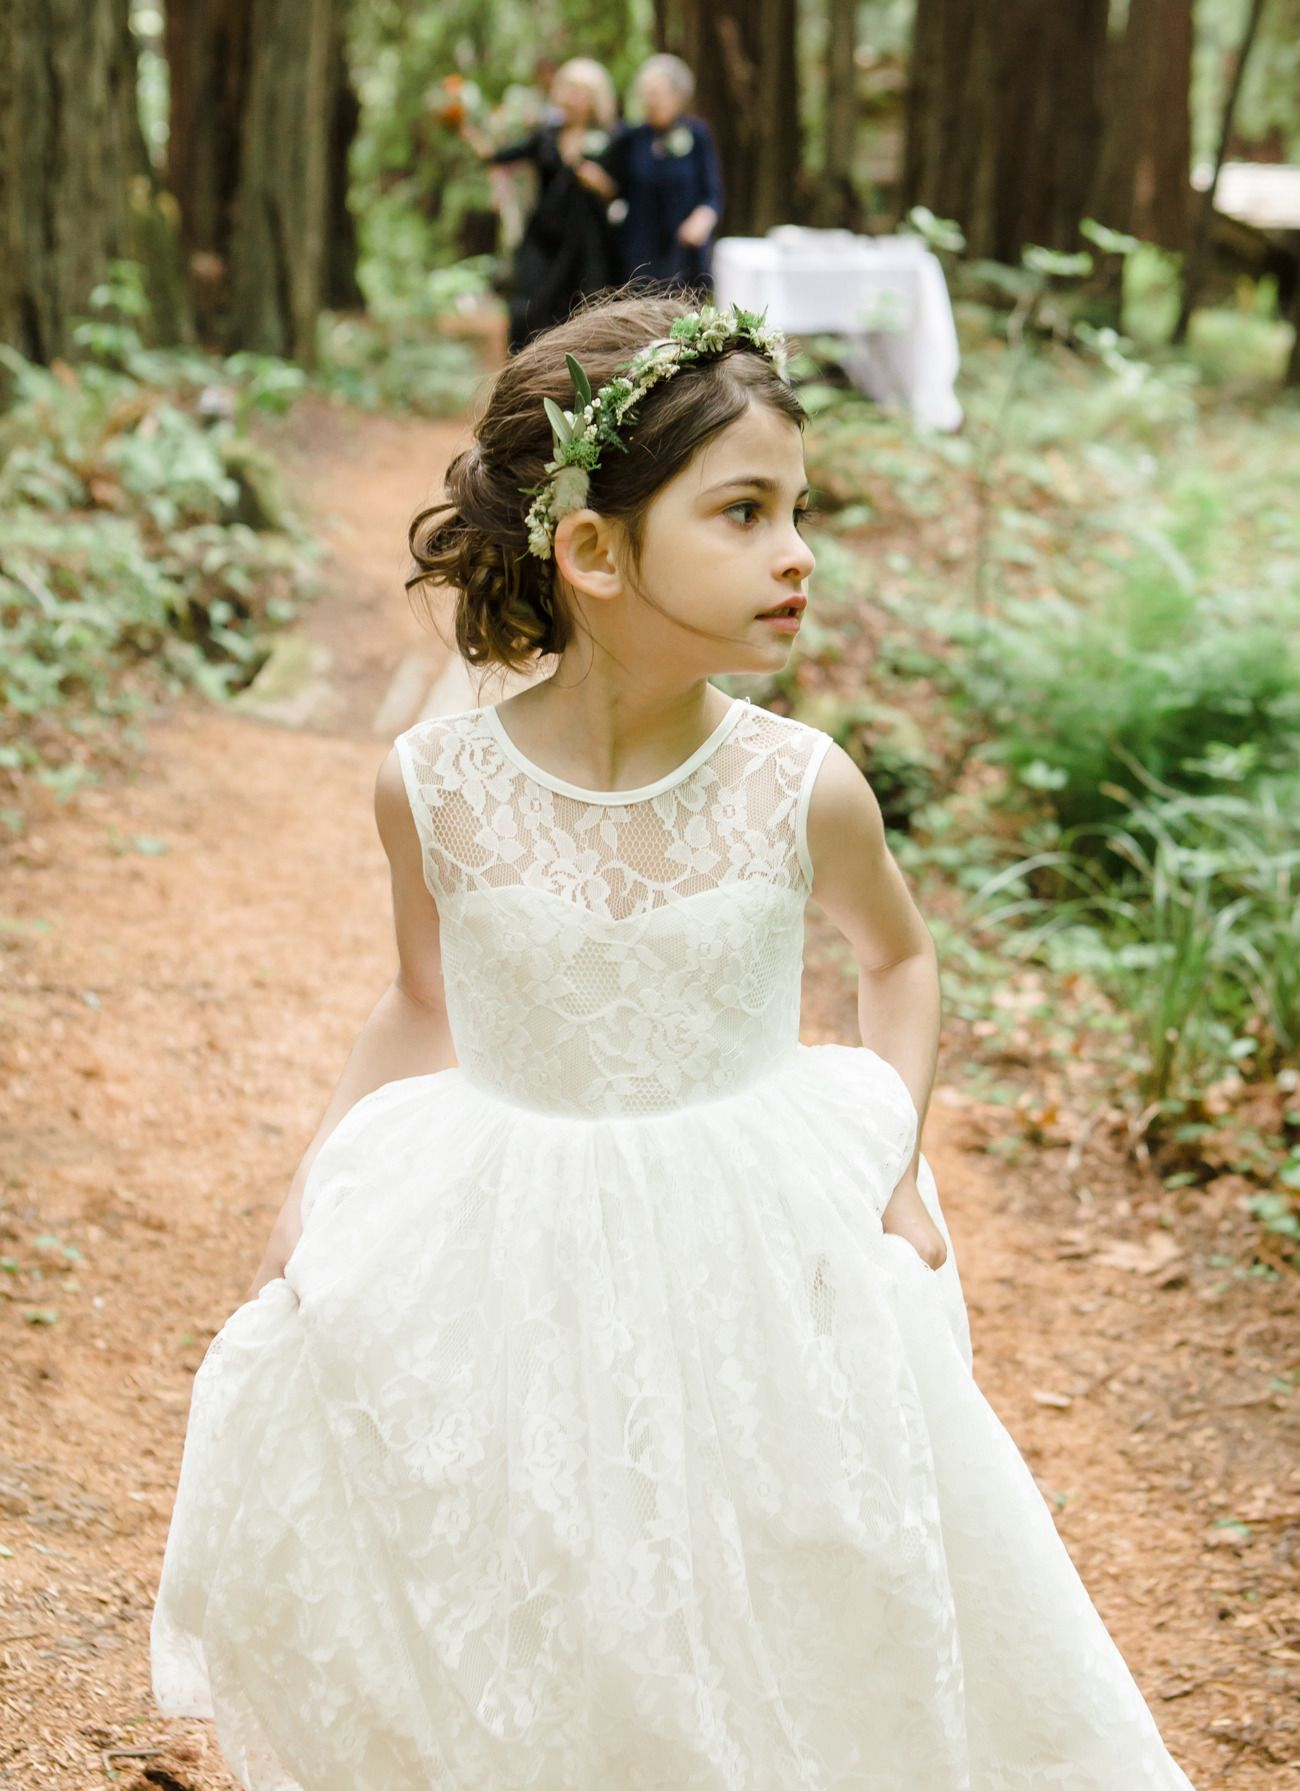 a974b846439b Romance in the Redwoods - A Forest Wedding